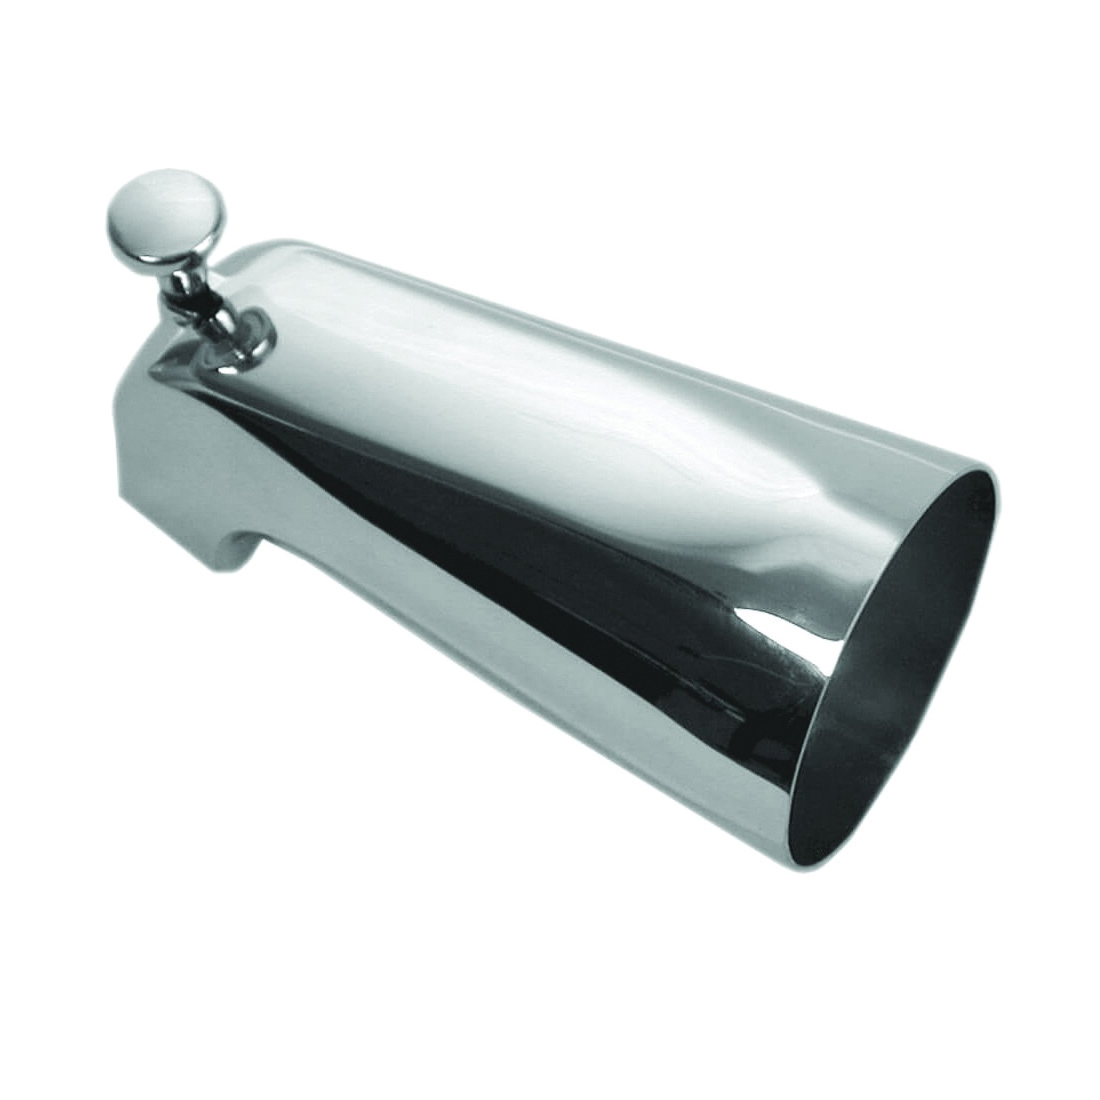 Picture of Danco 88052 Tub Spout with Front Diverter, Metal, Chrome, For: 1/2 in IPS Threaded Connection